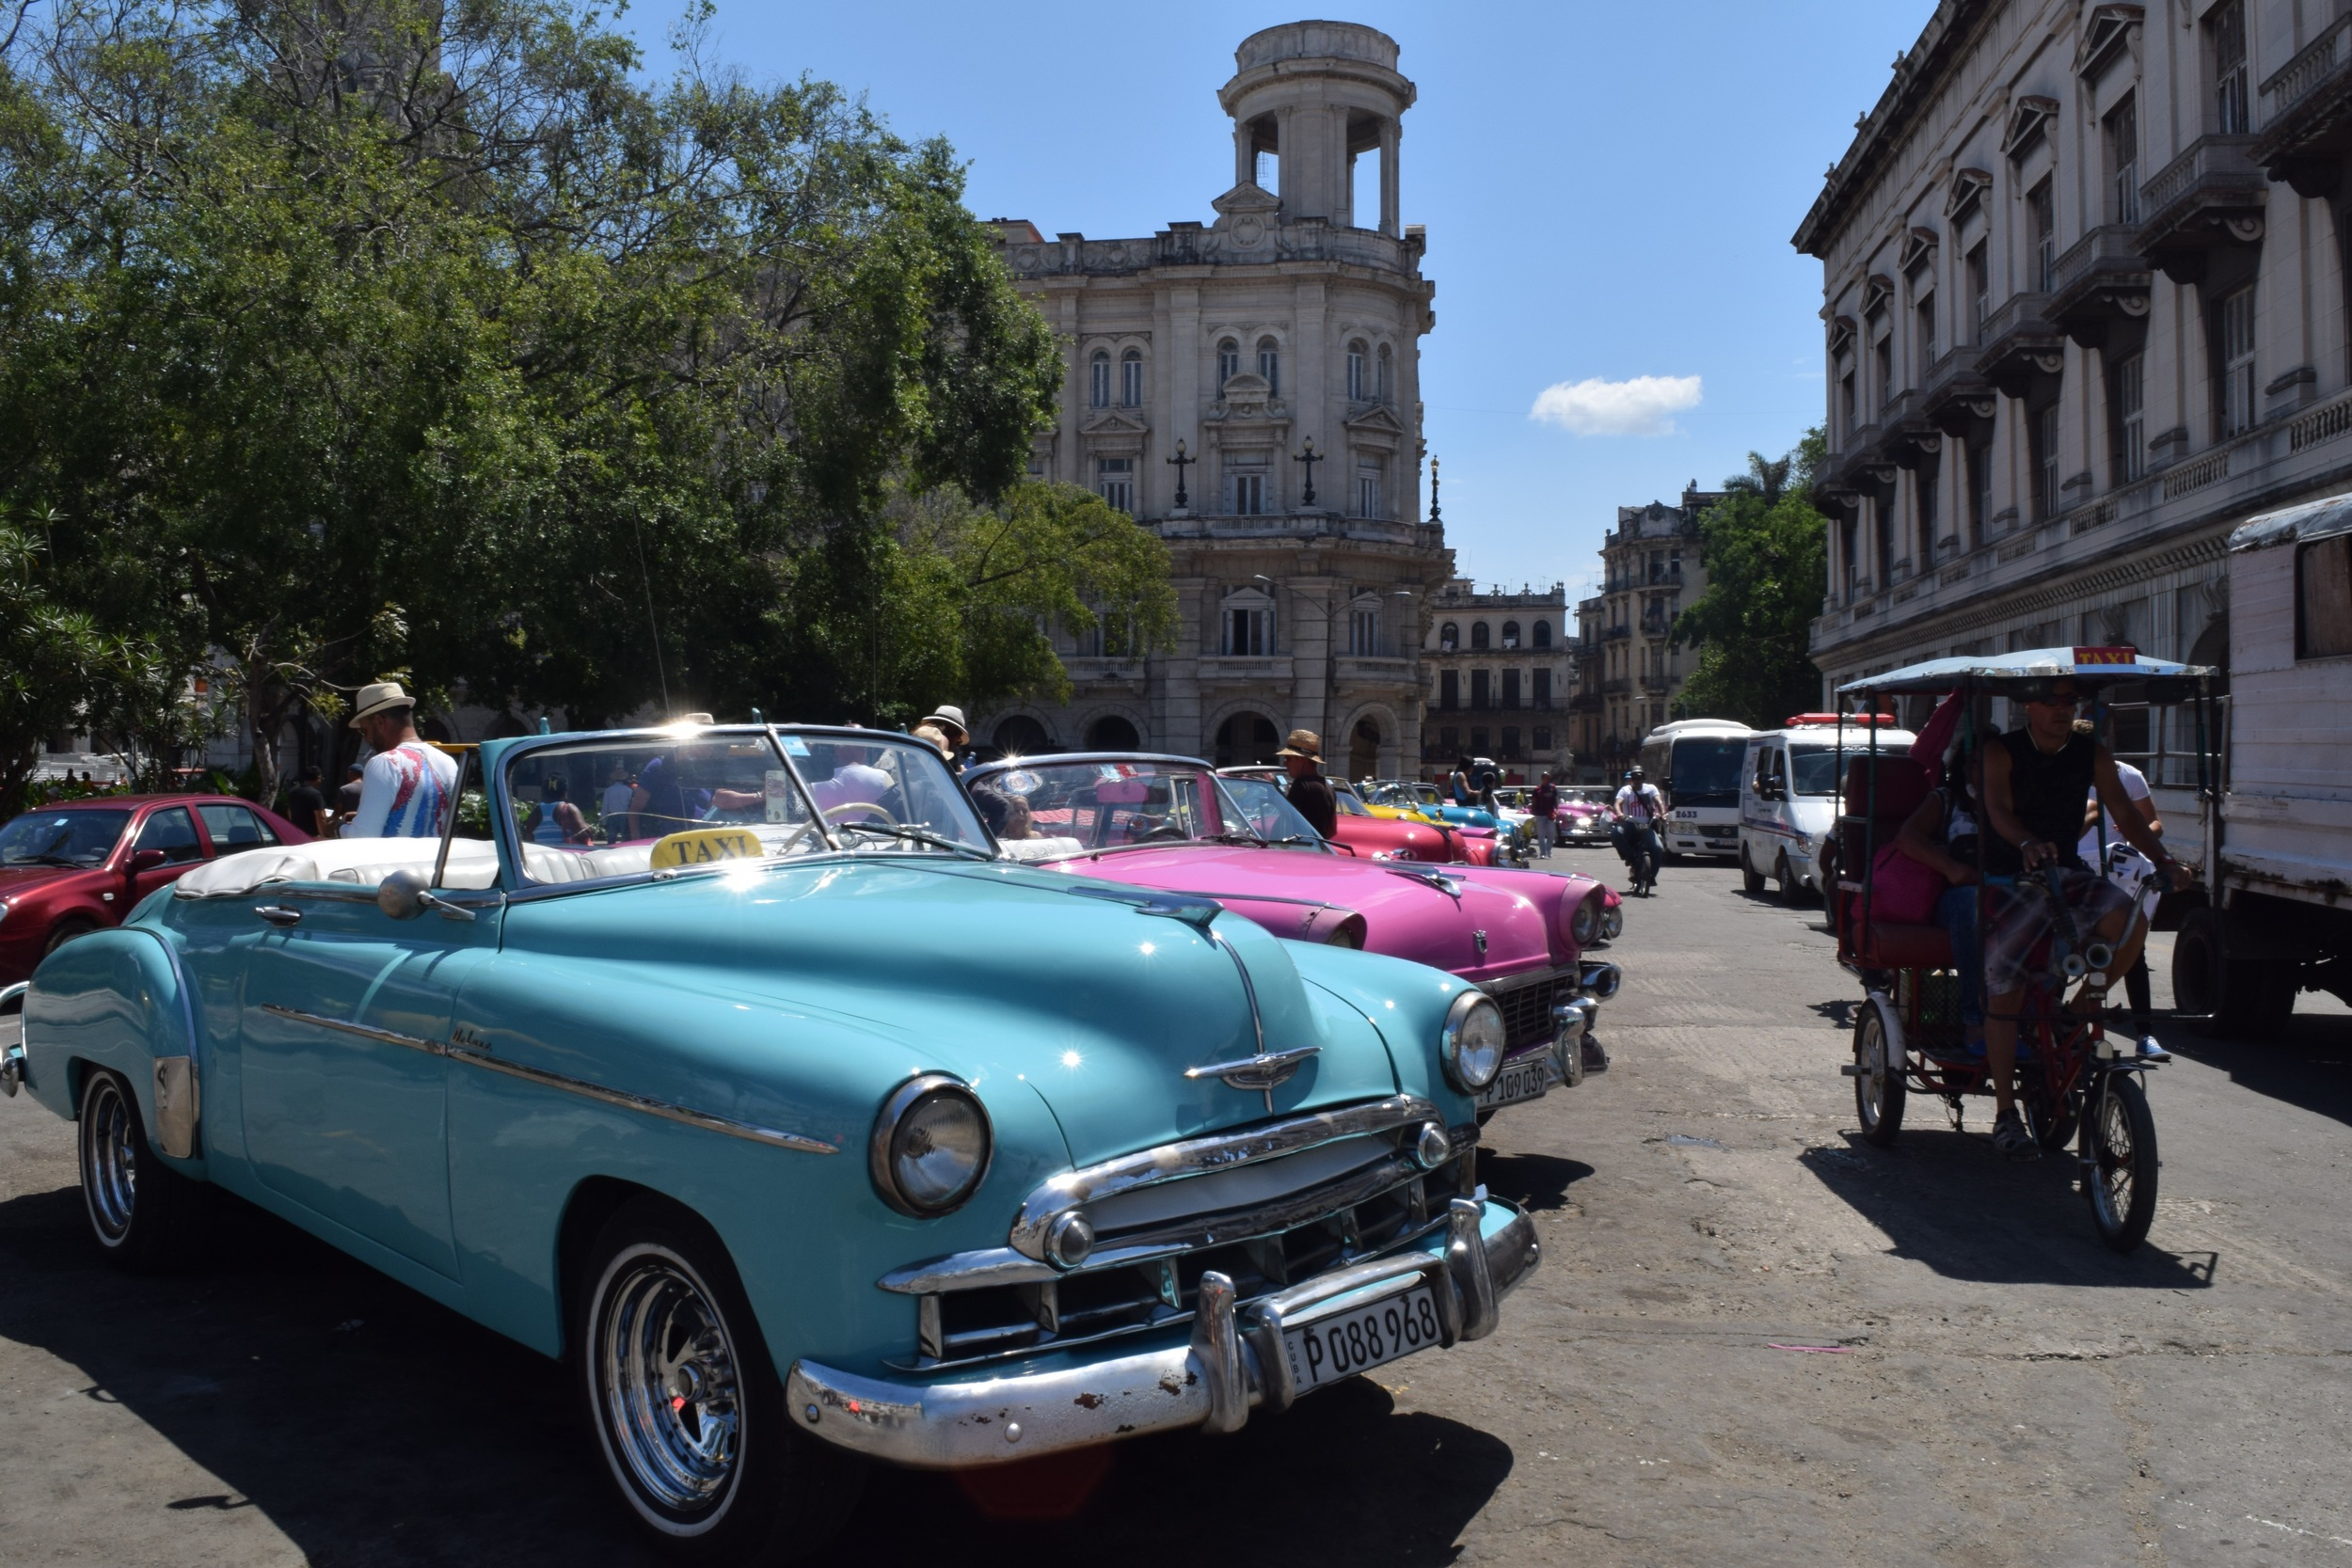 Time certainly seems to have stood still in Cuba.